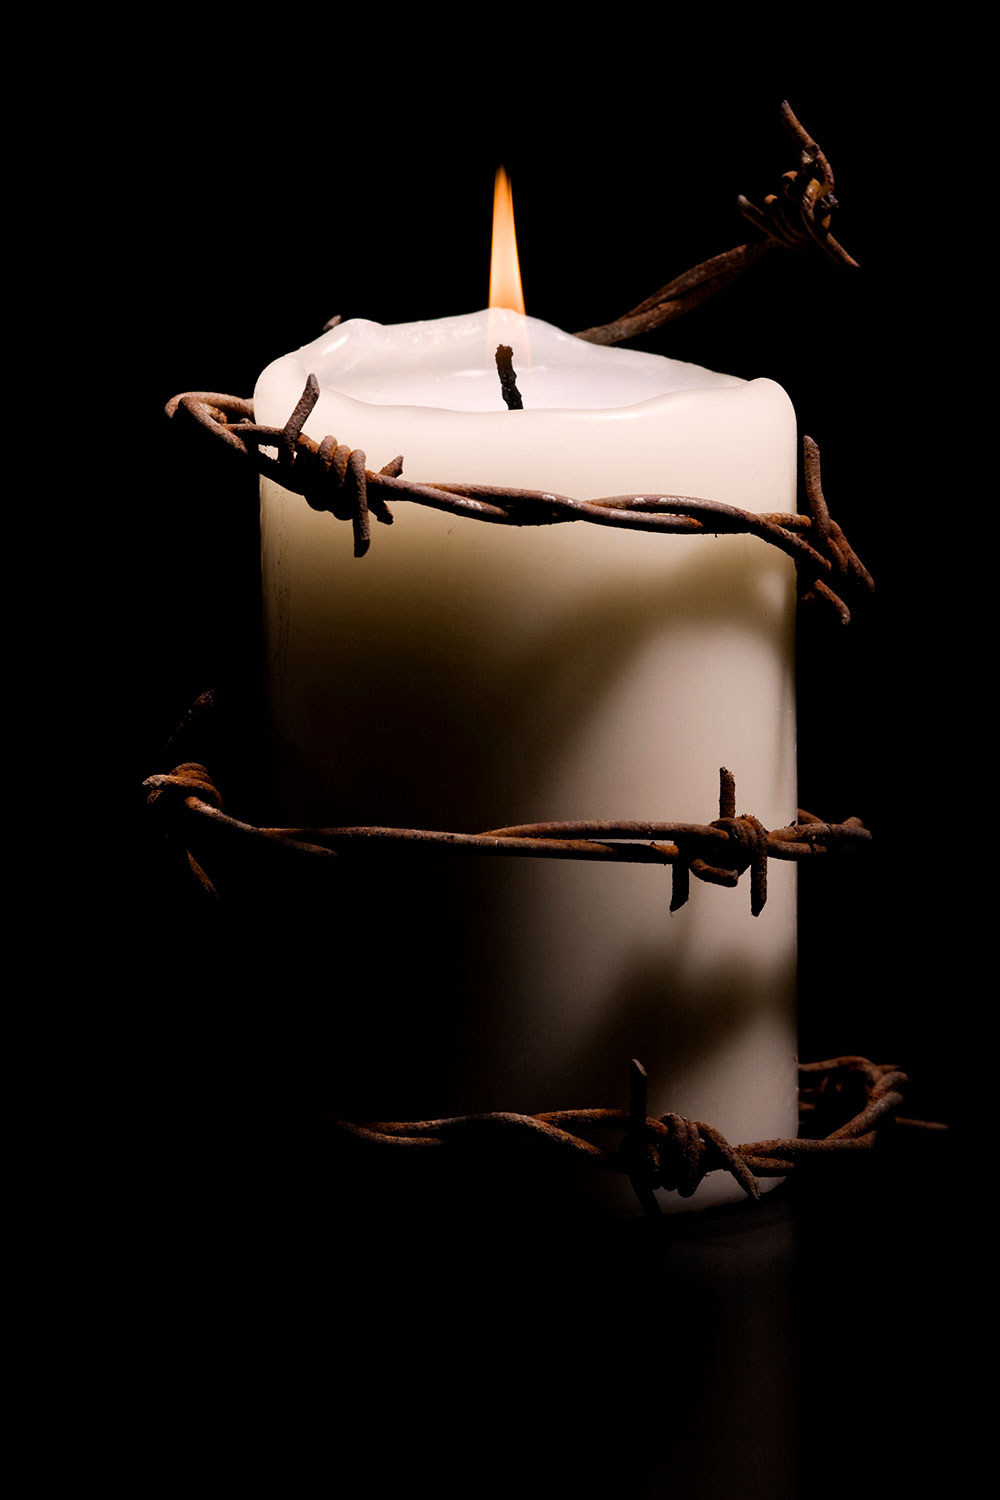 candle wrapped with barbed wire